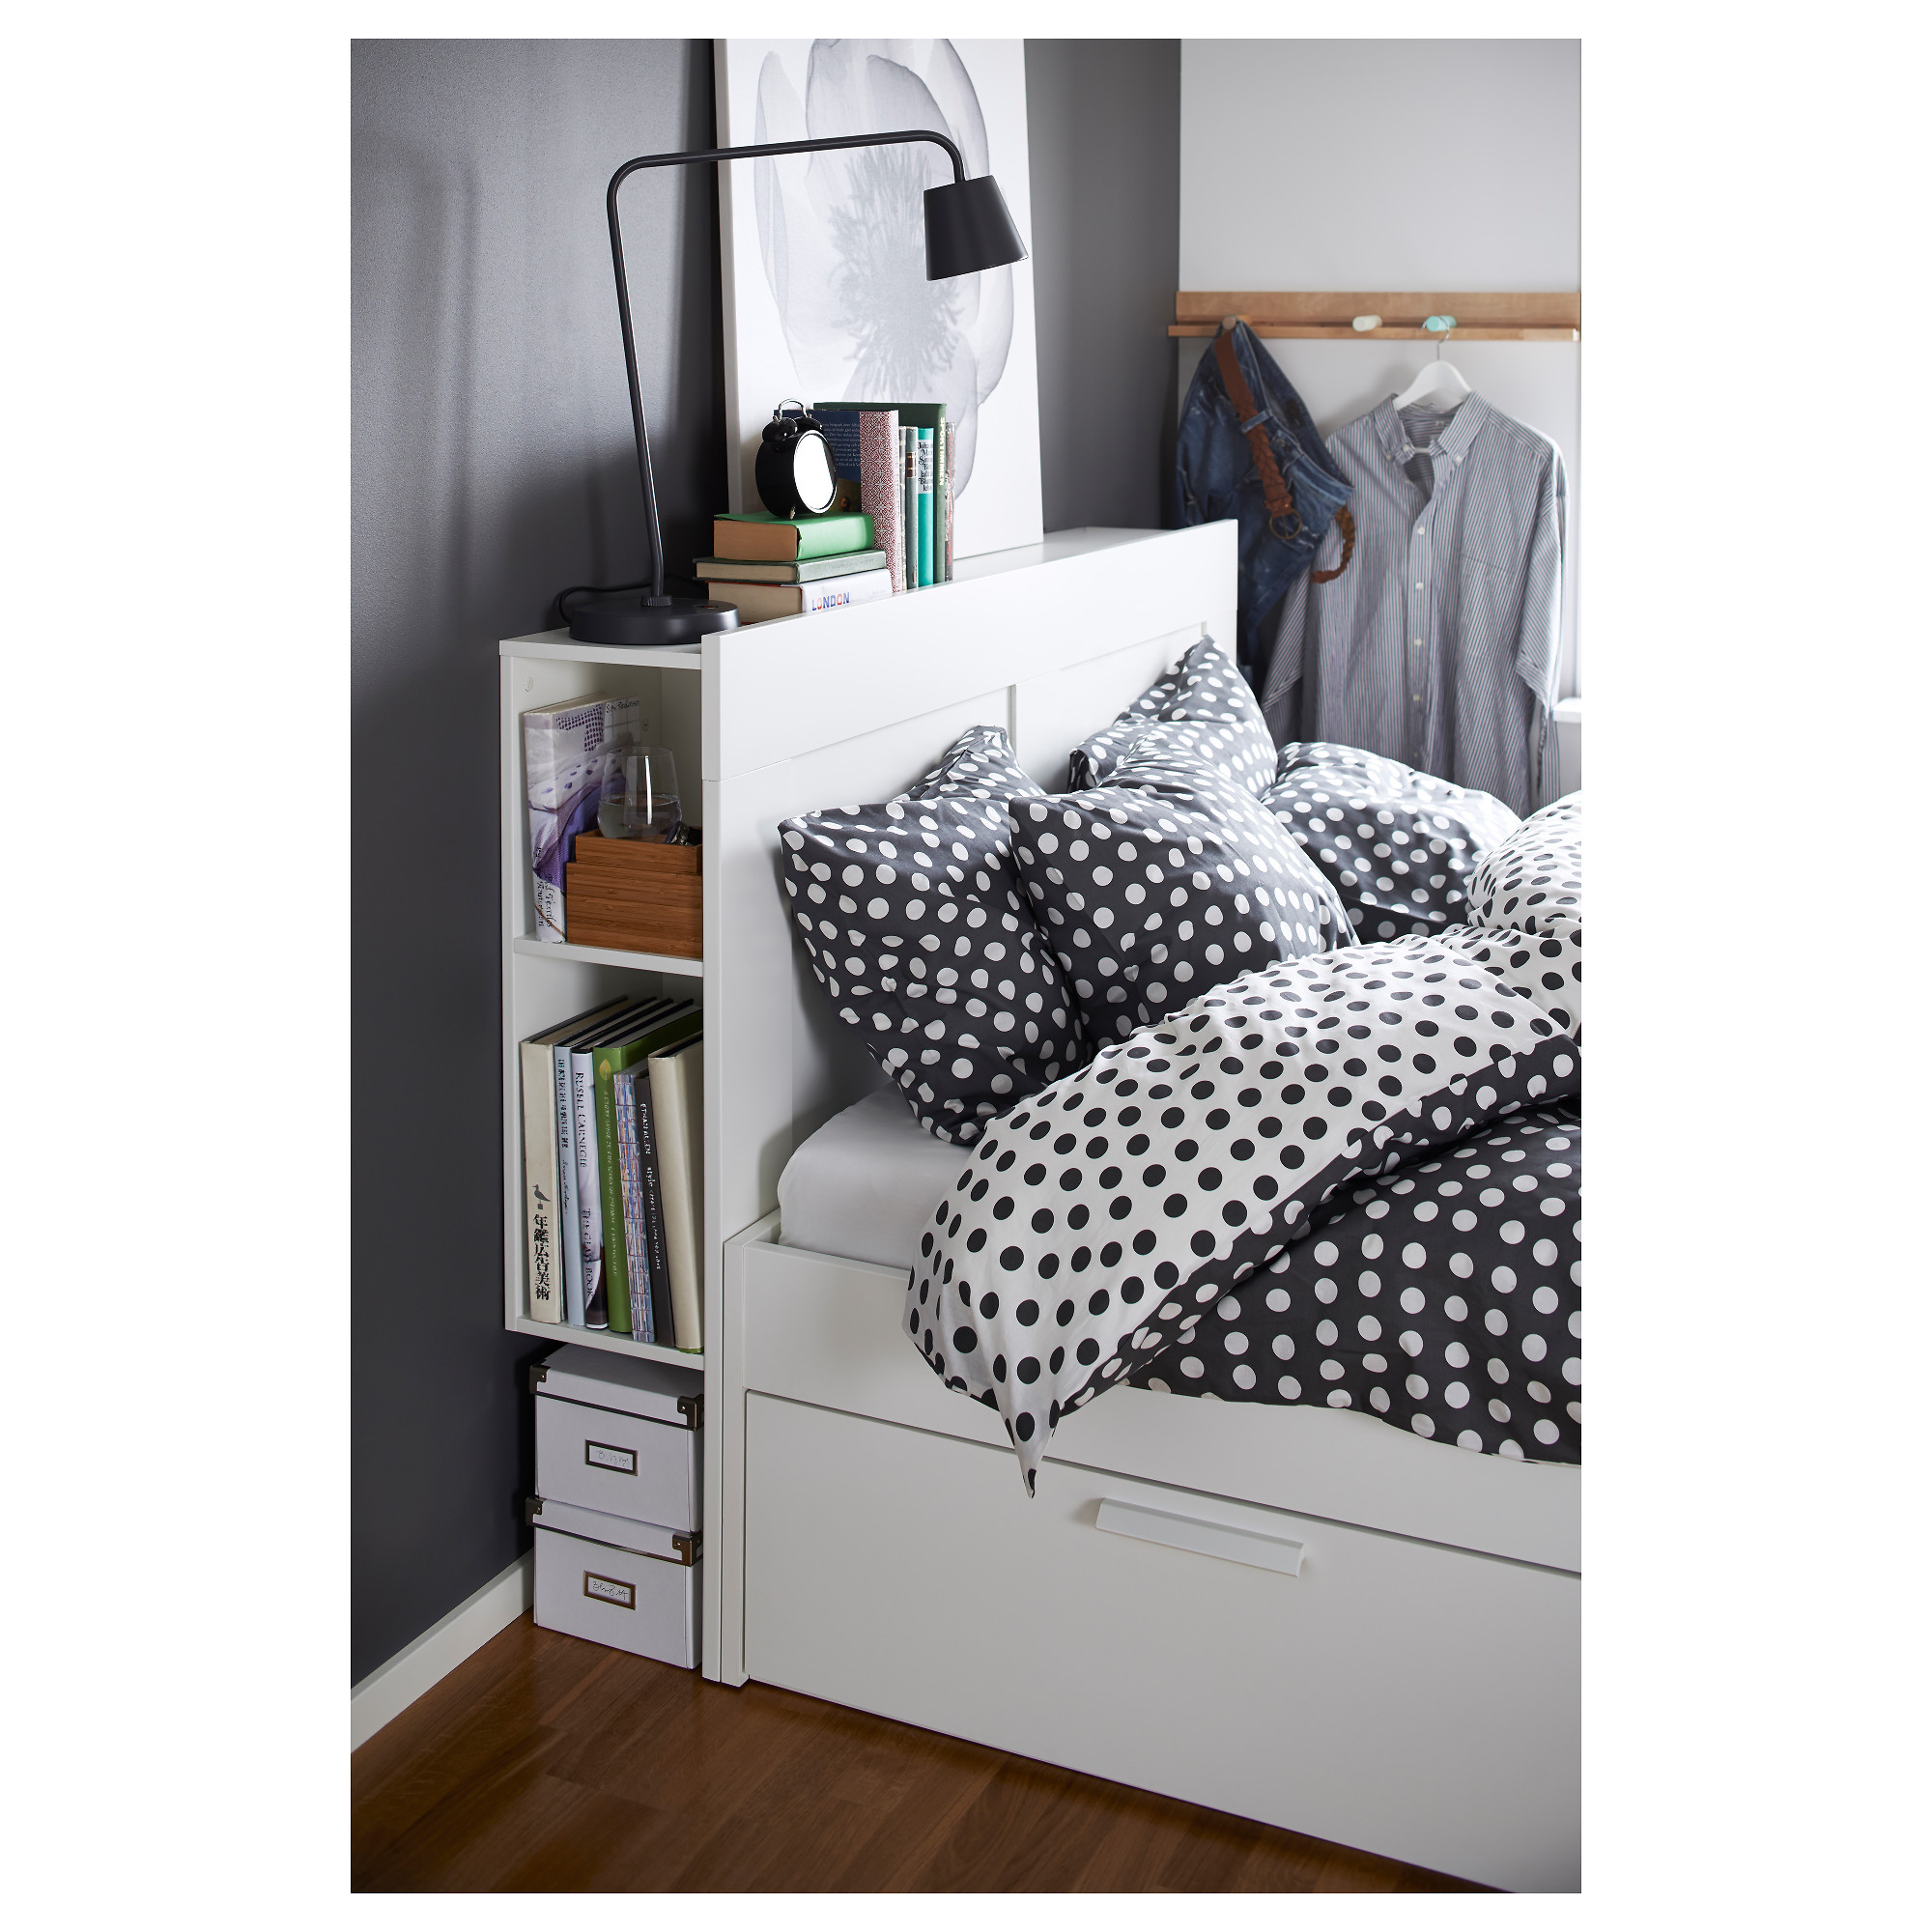 Be bed frames with headboard storage - Be Bed Frames With Headboard Storage 27